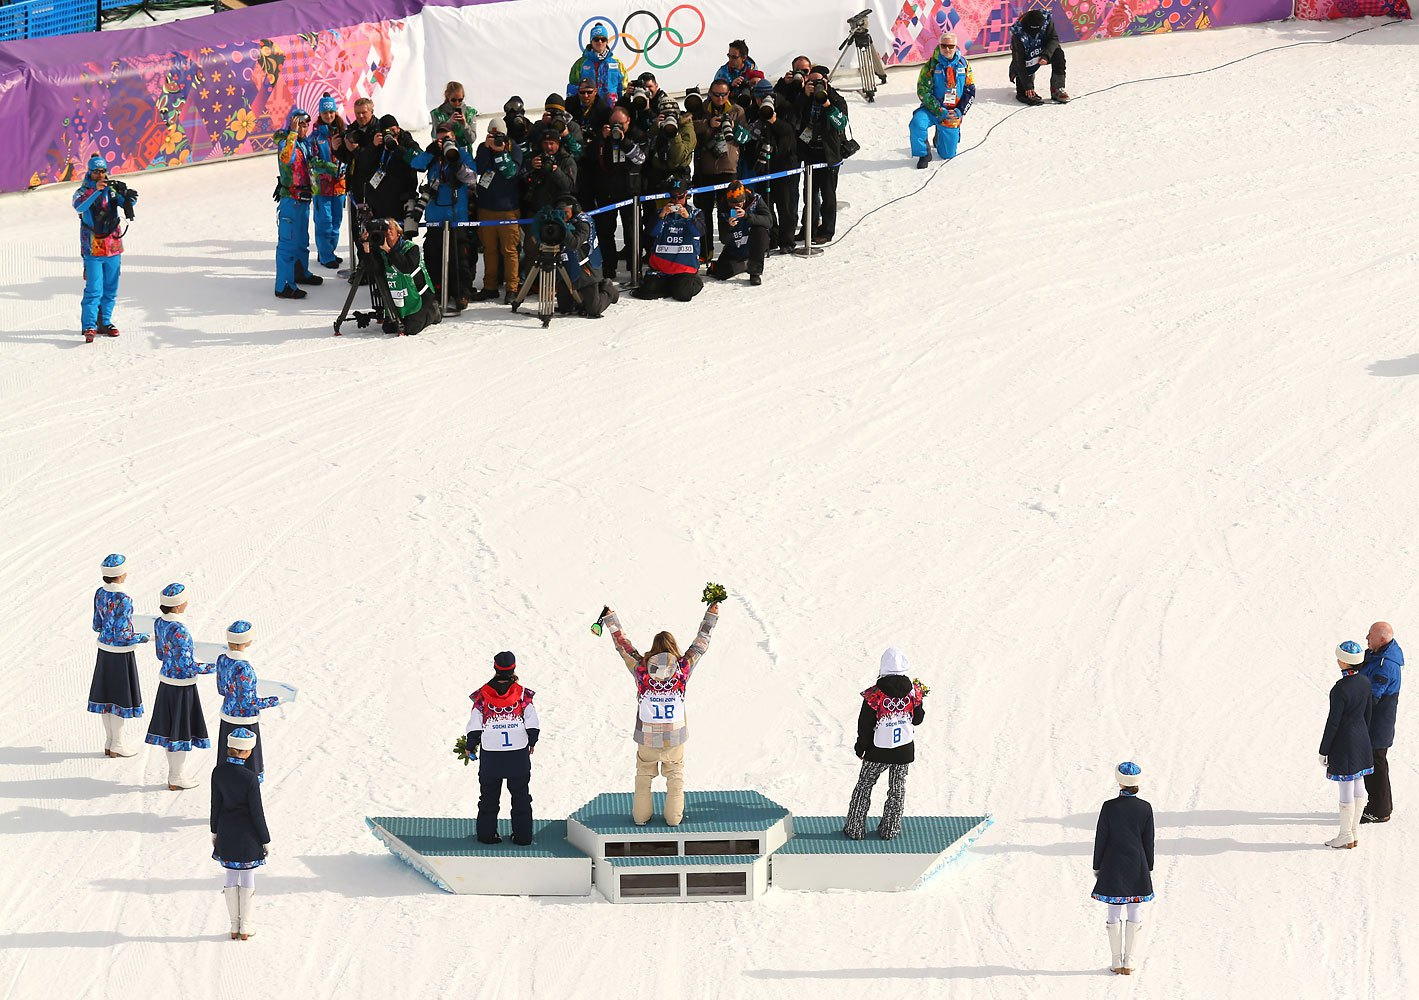 Left to right, bronze medalist Jenny Jones of Great Britain, gold medalist Jamie Anderson of the United States and silver medalist Enni Rukajarvi of Finland celebrate during the flower ceremony for the Women's Snowboard Slopestyle Finals at Rosa Khutor Extreme Park on Feb. 9, 2014.